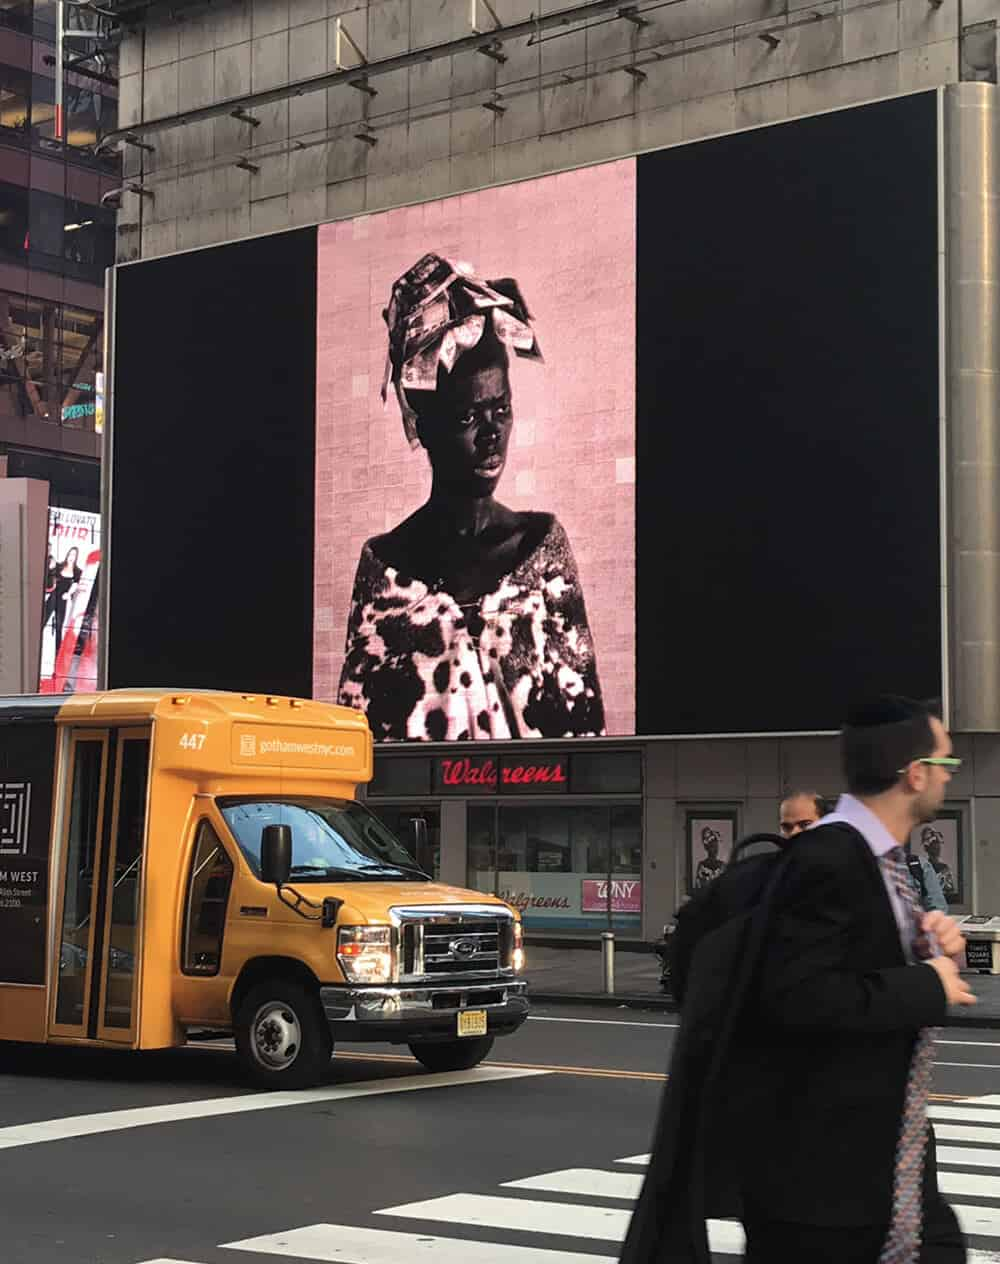 Installation shot of Zanele Muholi's intervention in Time Square, New York City, as part of Performa 17. Courtesy of Performa.